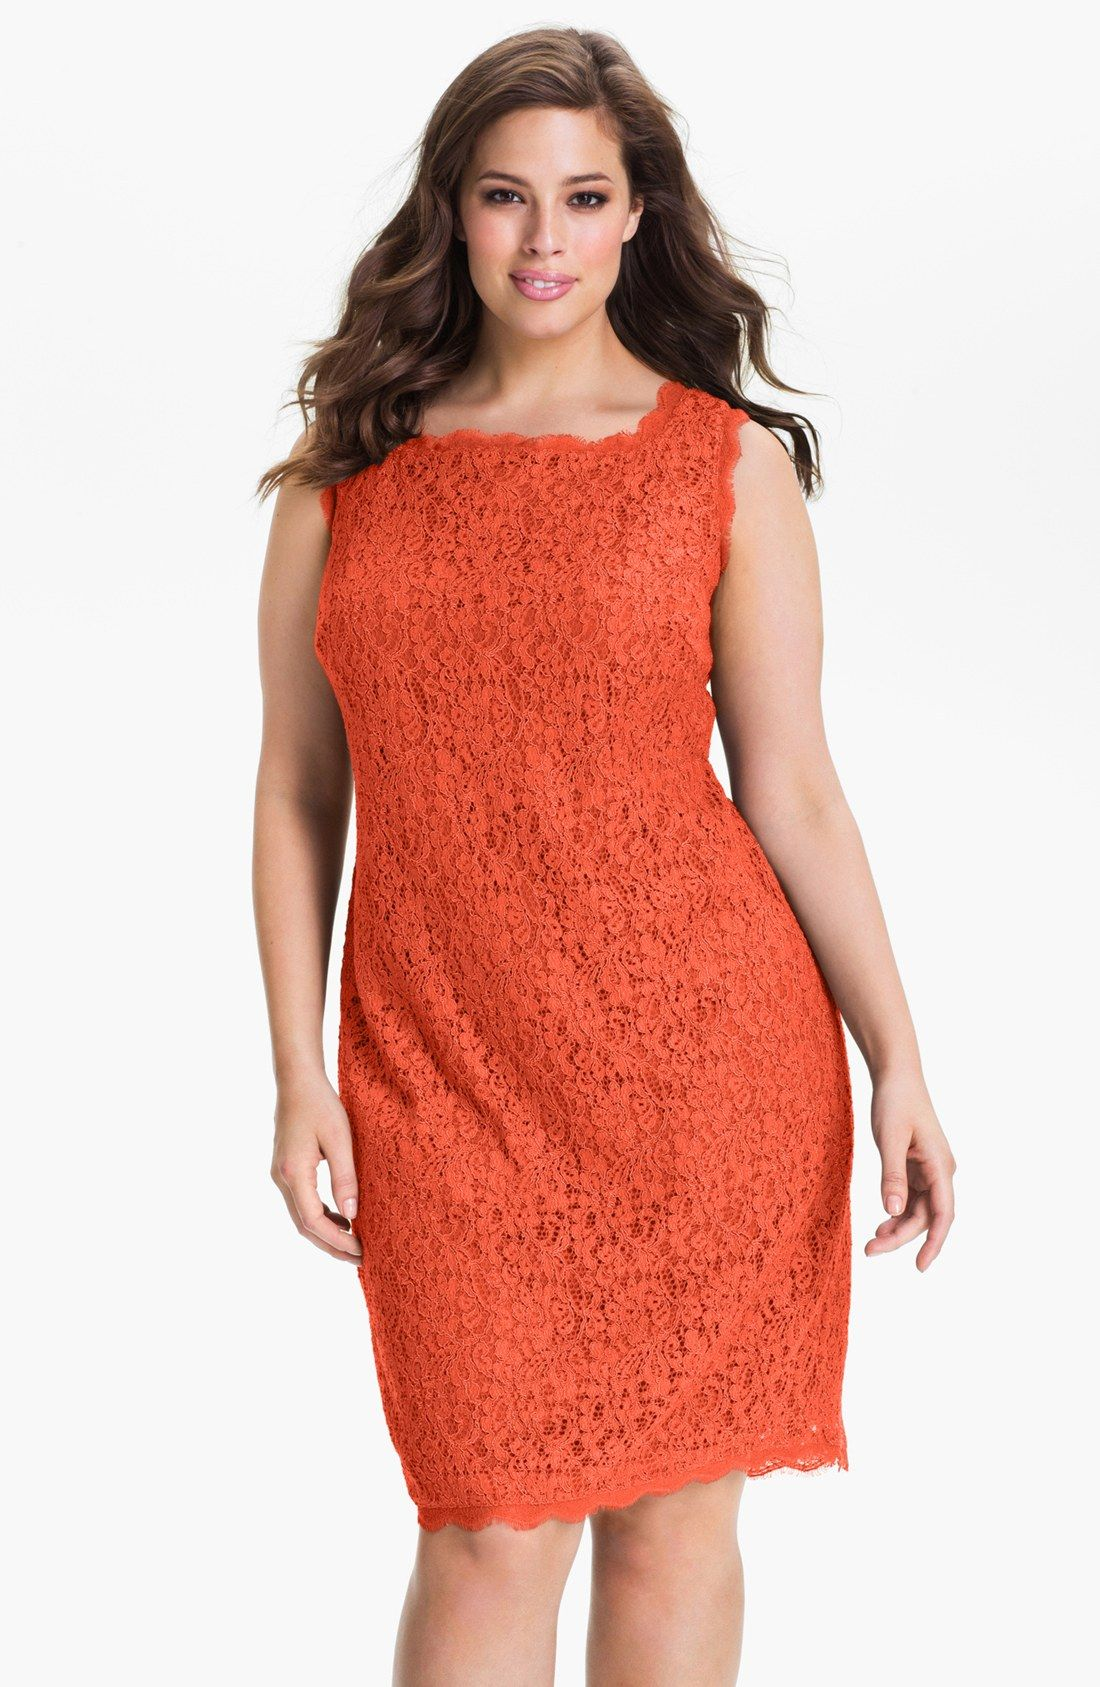 Plus size coral dress for wedding  ENCAJE  costura  Pinterest  Lace sheath dress Adrianna papell